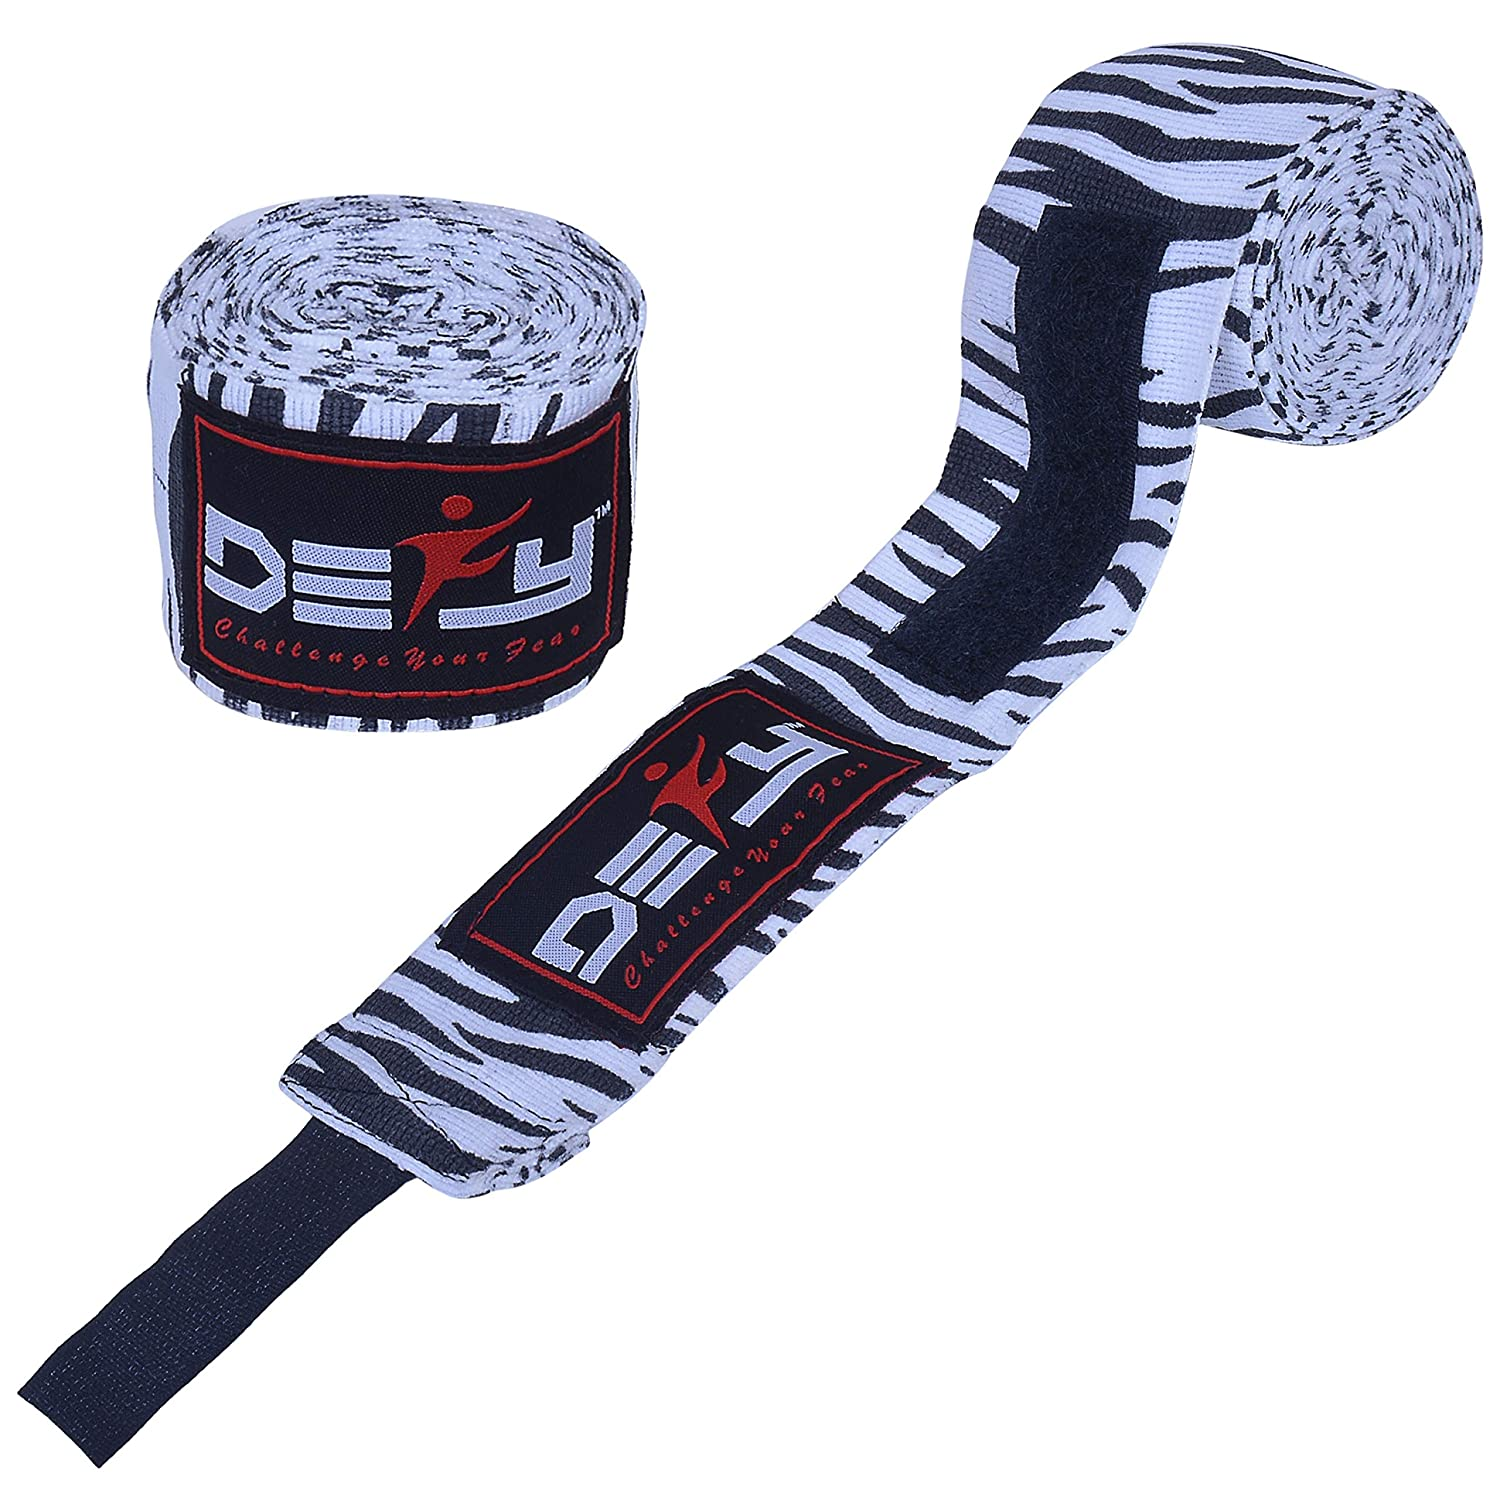 DEFY Professional 180 Inch Hand Wraps for Boxing Muay Thai MMA Elastic Bandages for Men /& Women Pair Defy Sports Inc